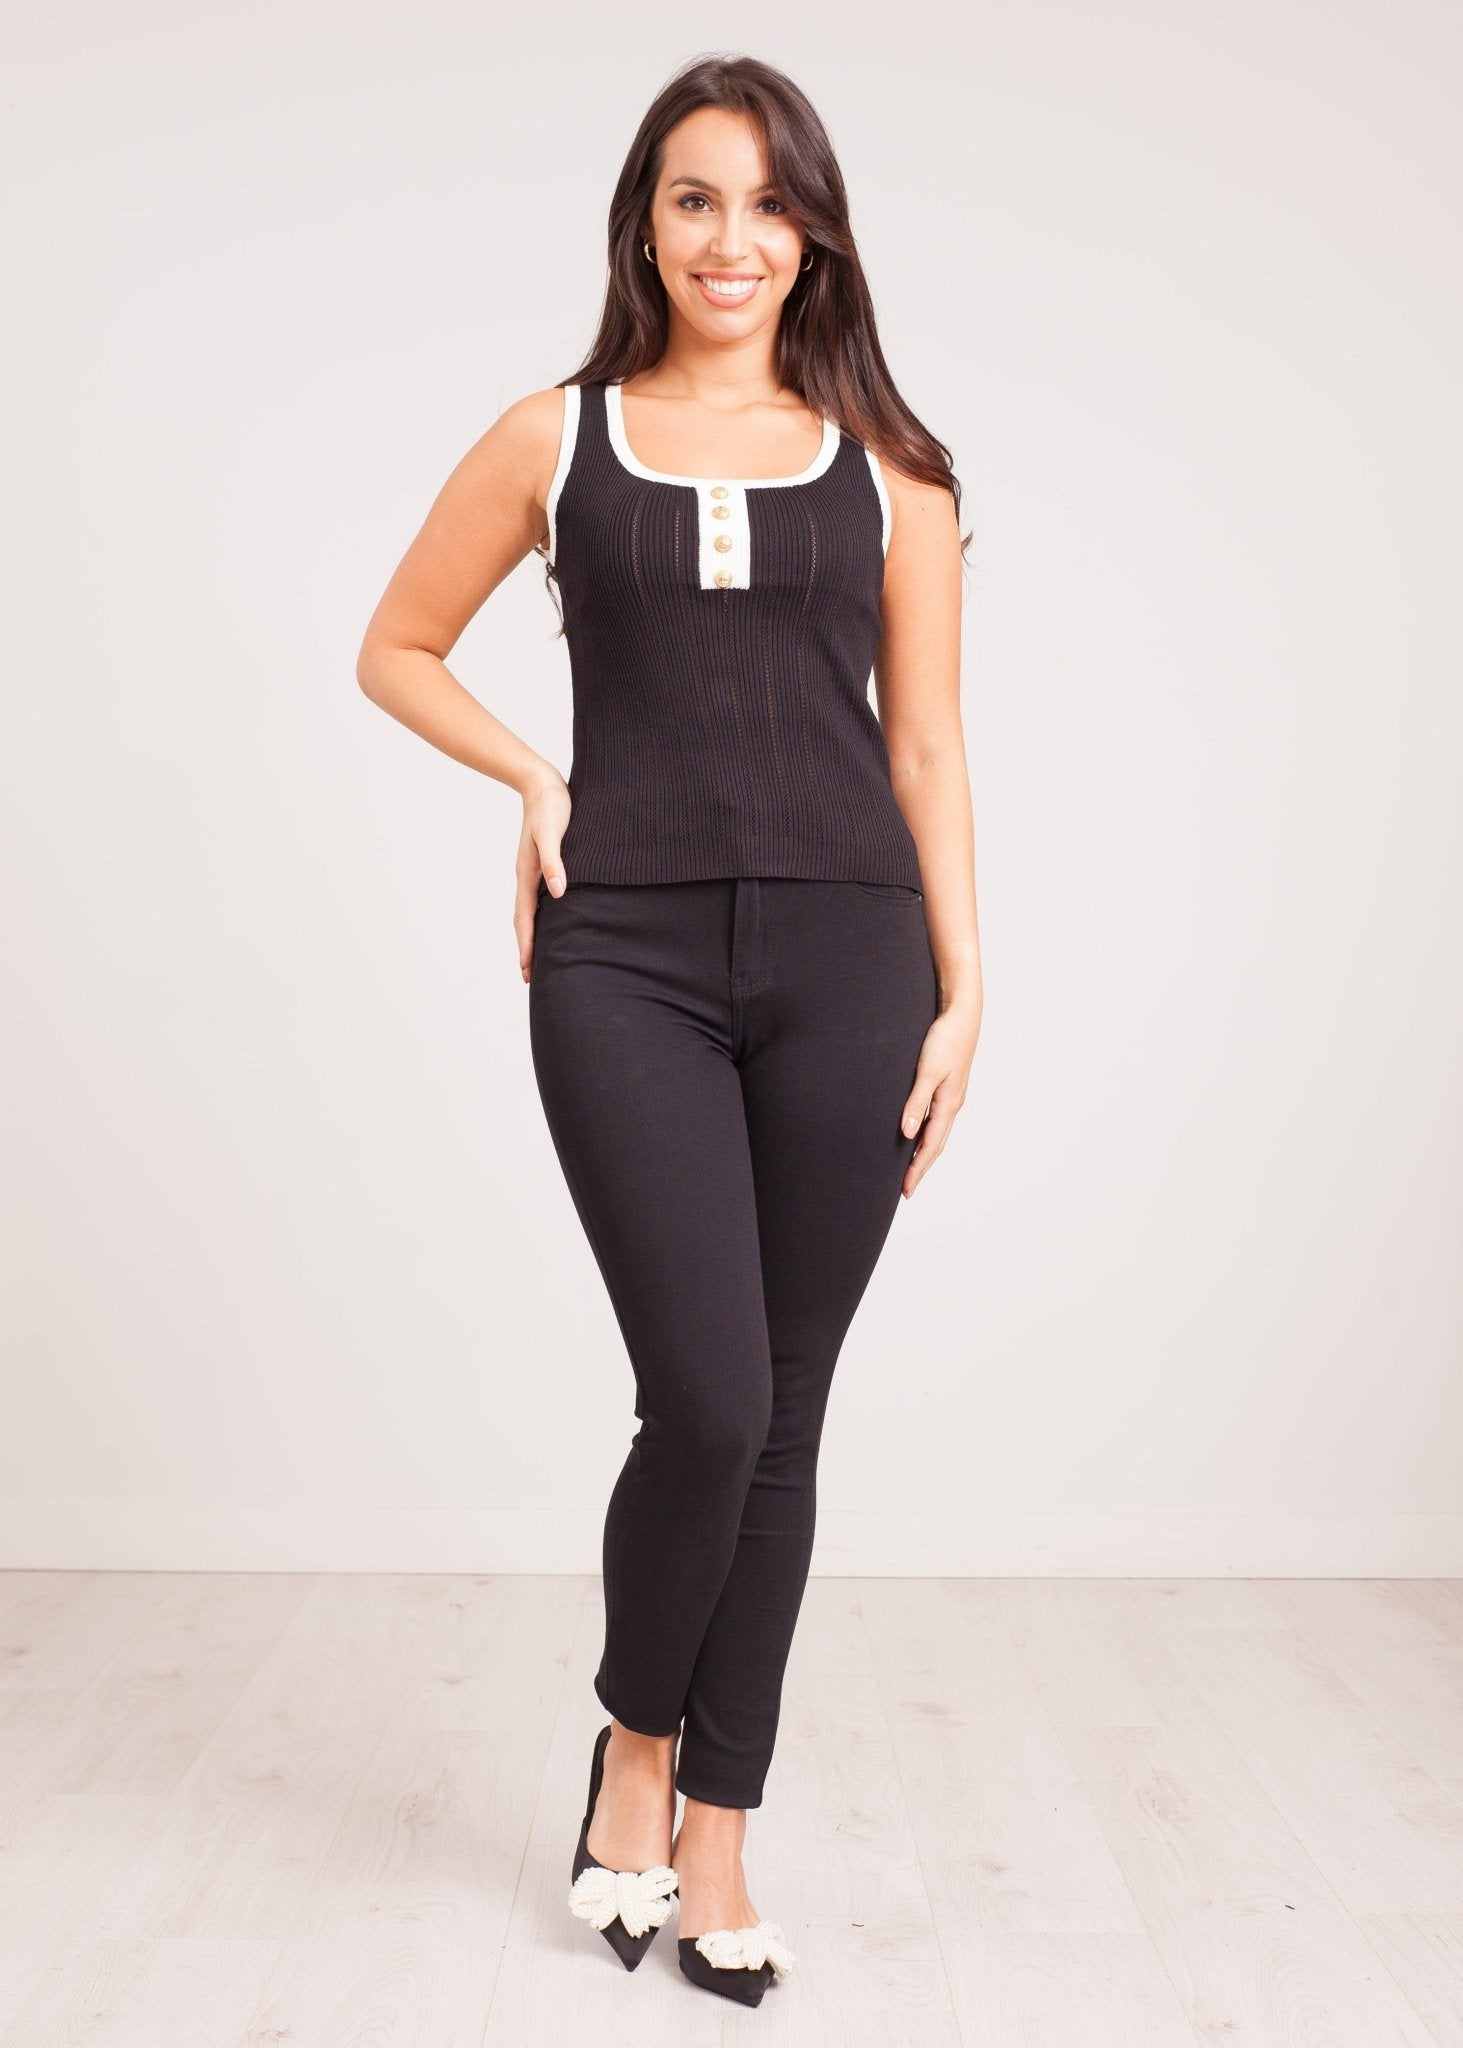 Emilia Black Vest Top with Buttons - The Walk in Wardrobe